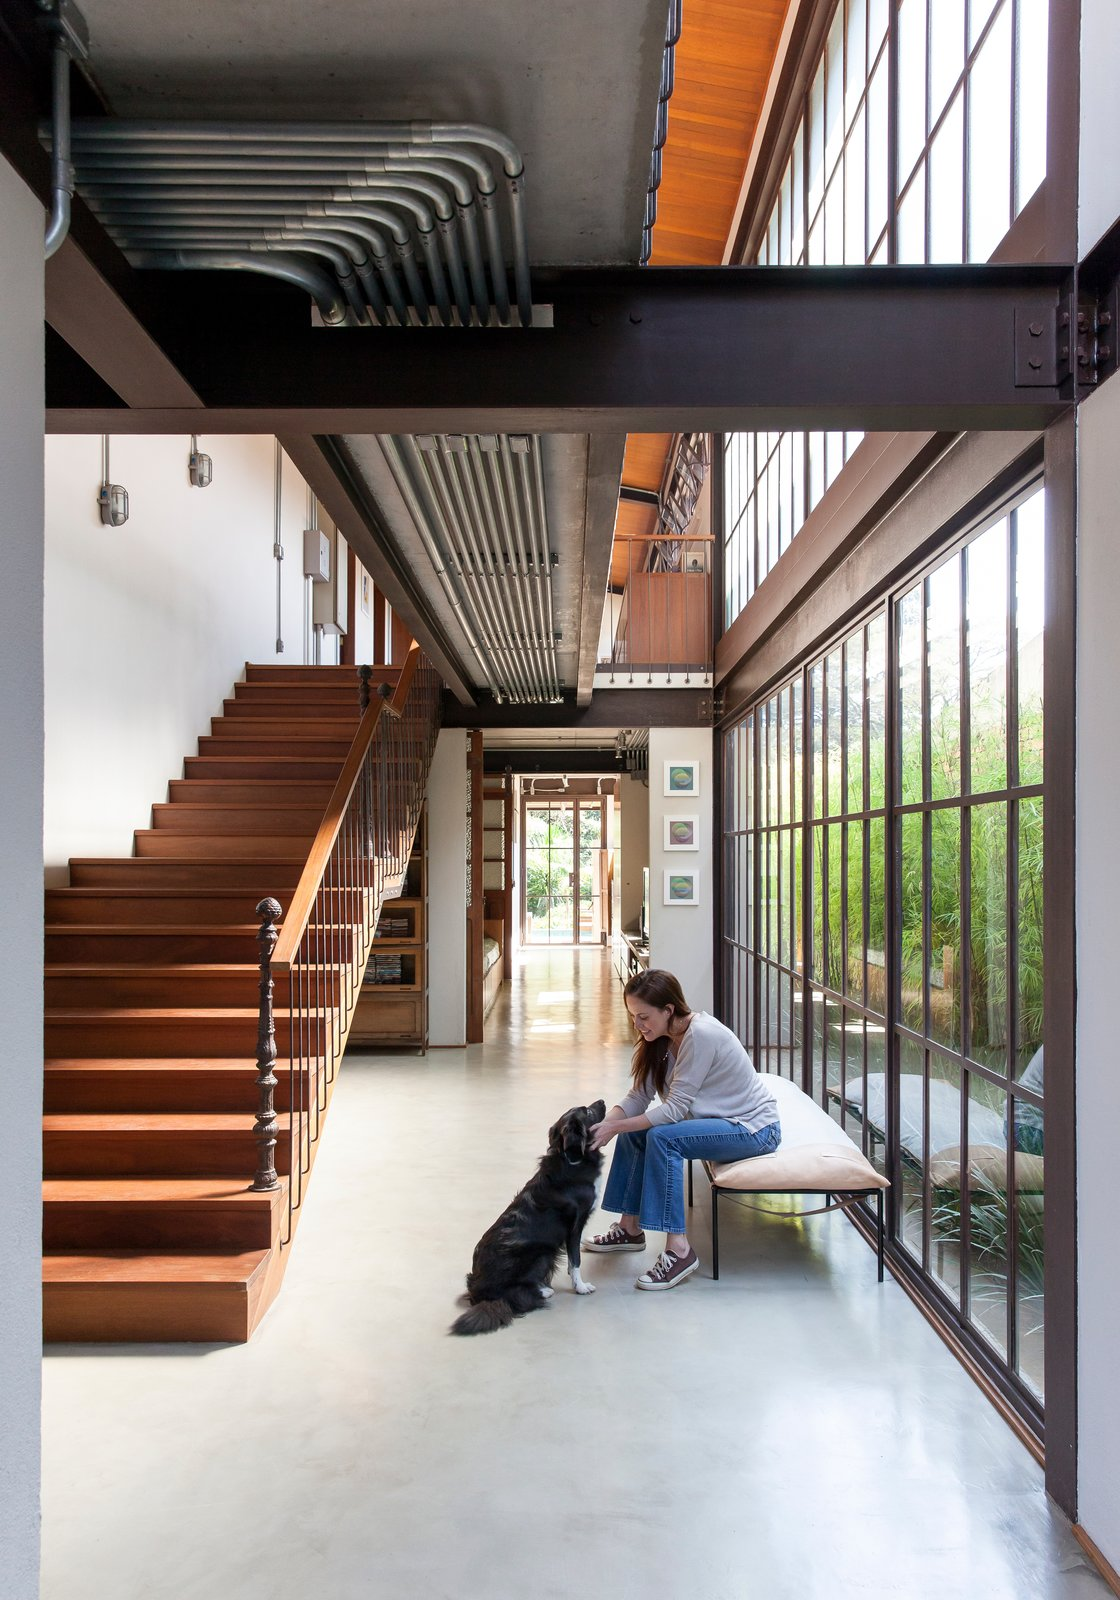 Staircase, Metal Tread, and Wood Railing  Best Photos from Conde D'eu House